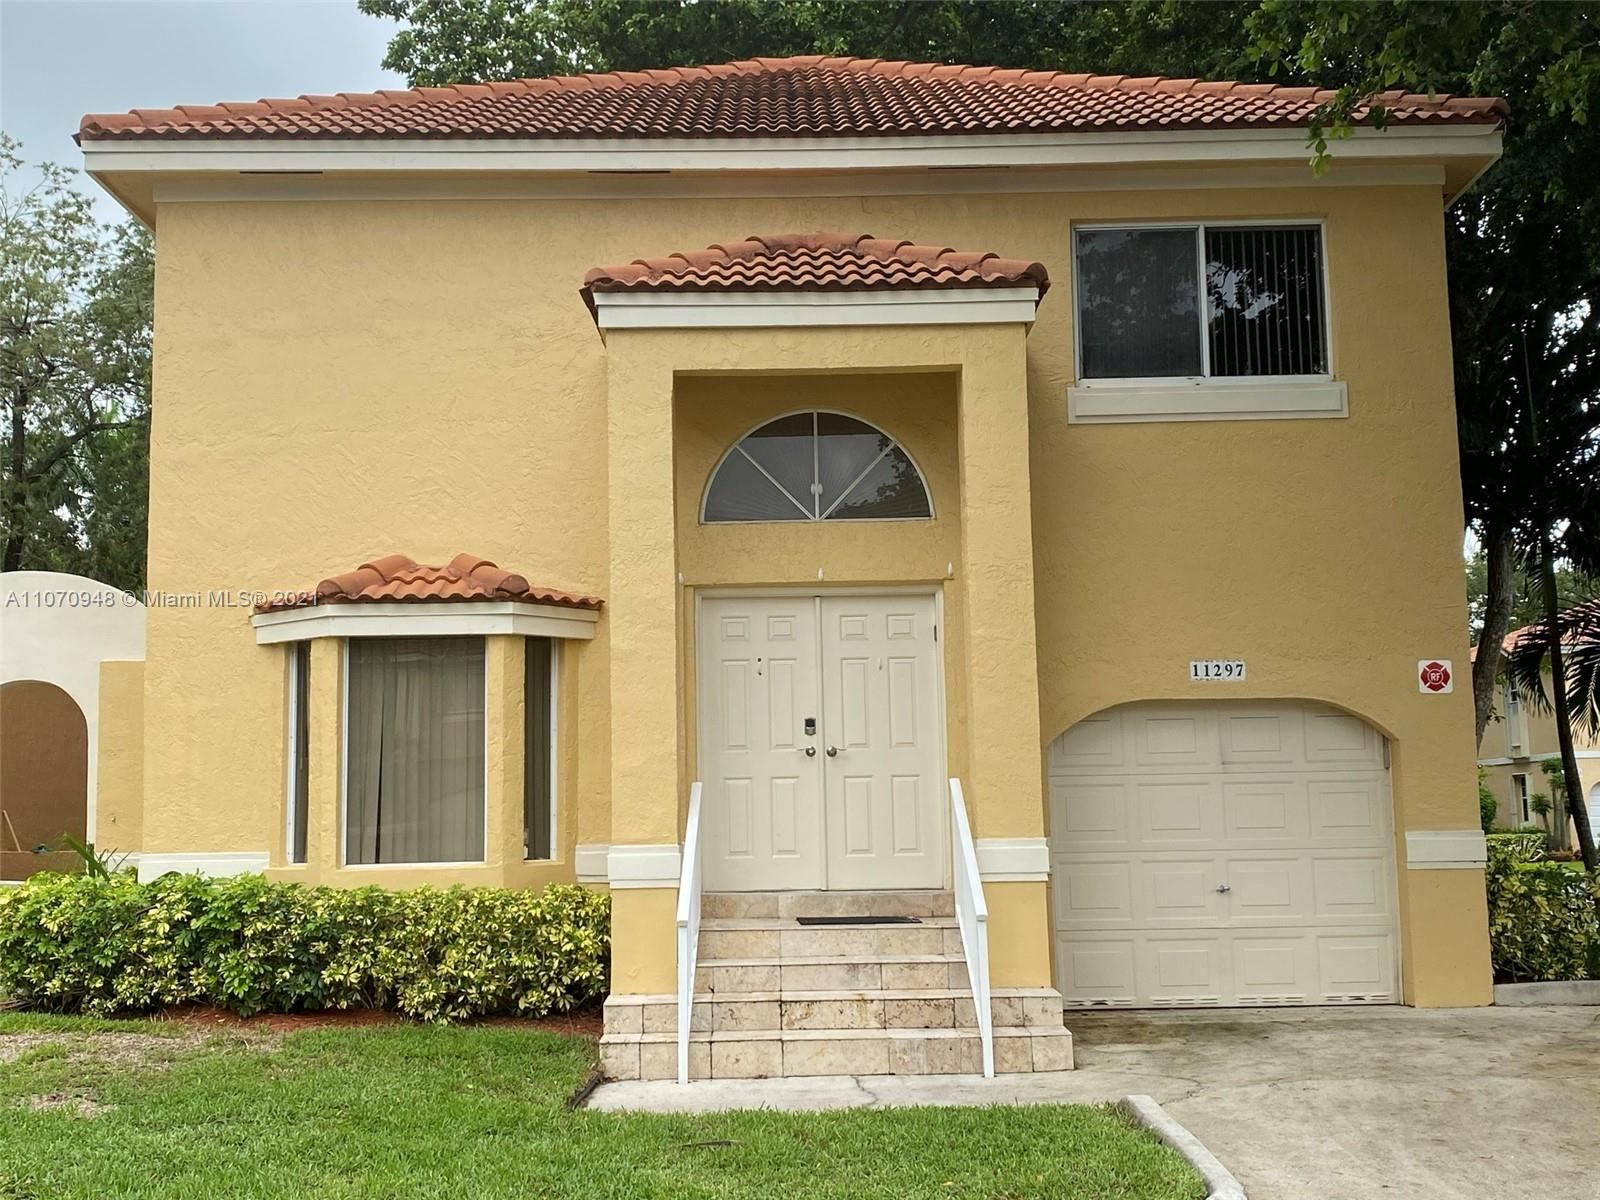 11297 Lakeview Dr, Coral Springs, FL 33071 - #: A11070948